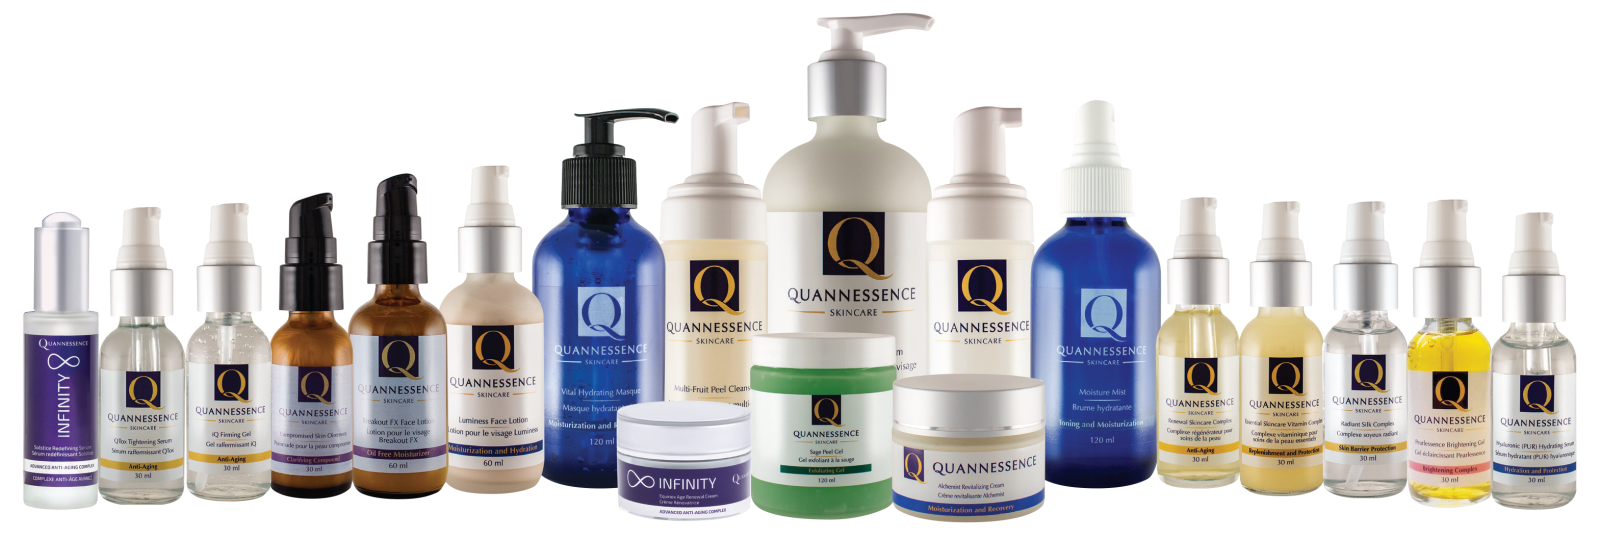 Quannessence Product Line